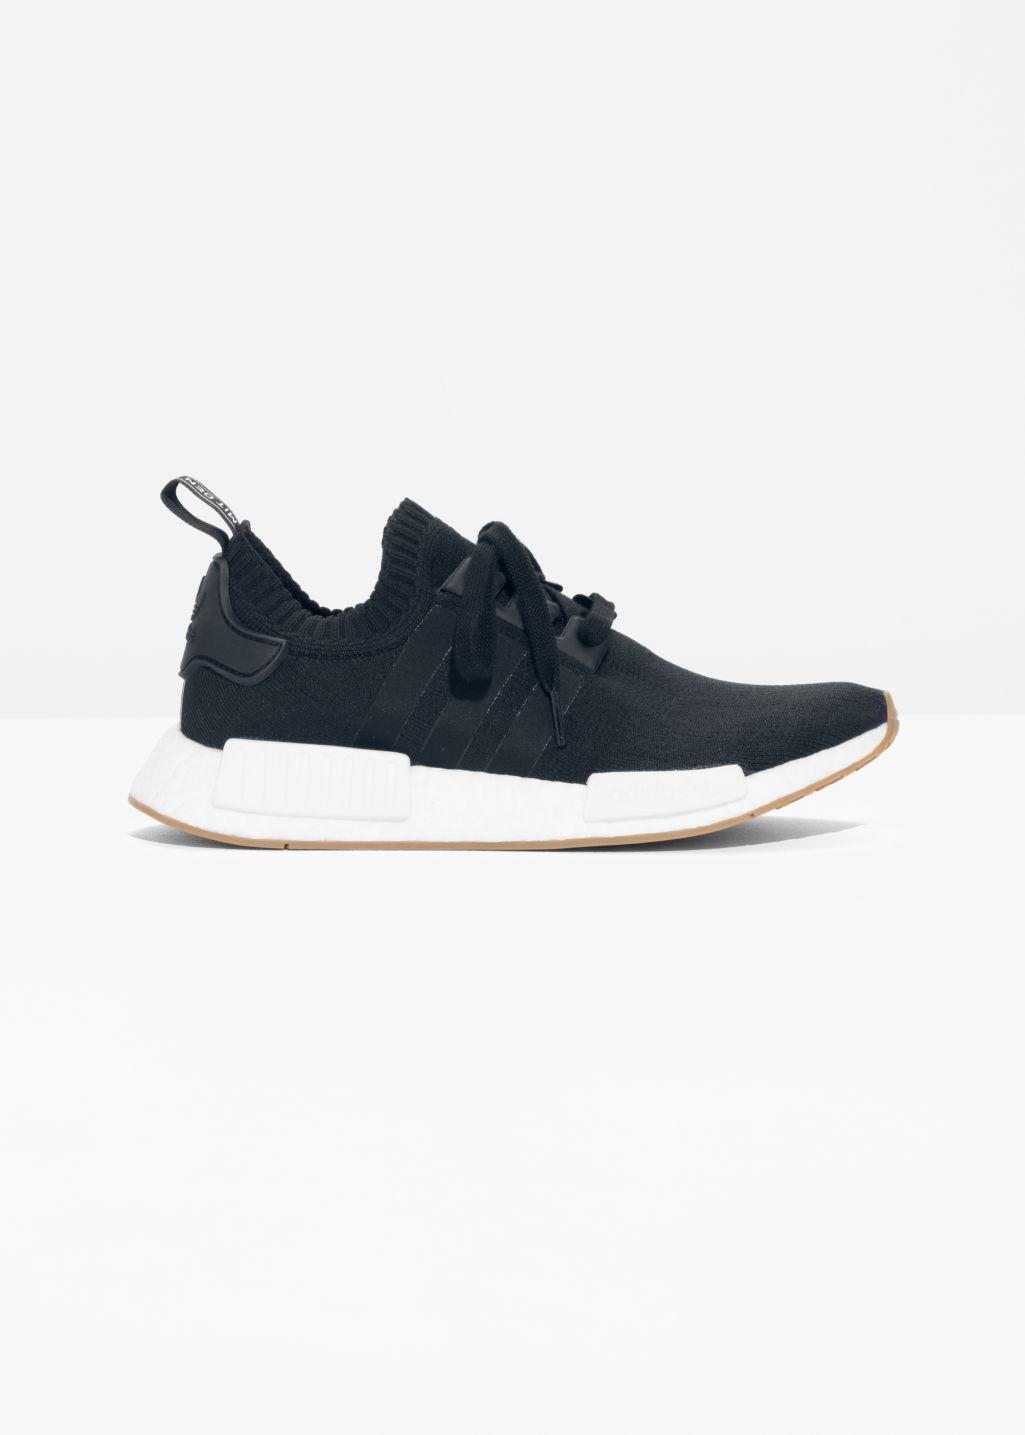 brand new 01941 efbe4 Other Stories. Women s Black Adidas Nmd